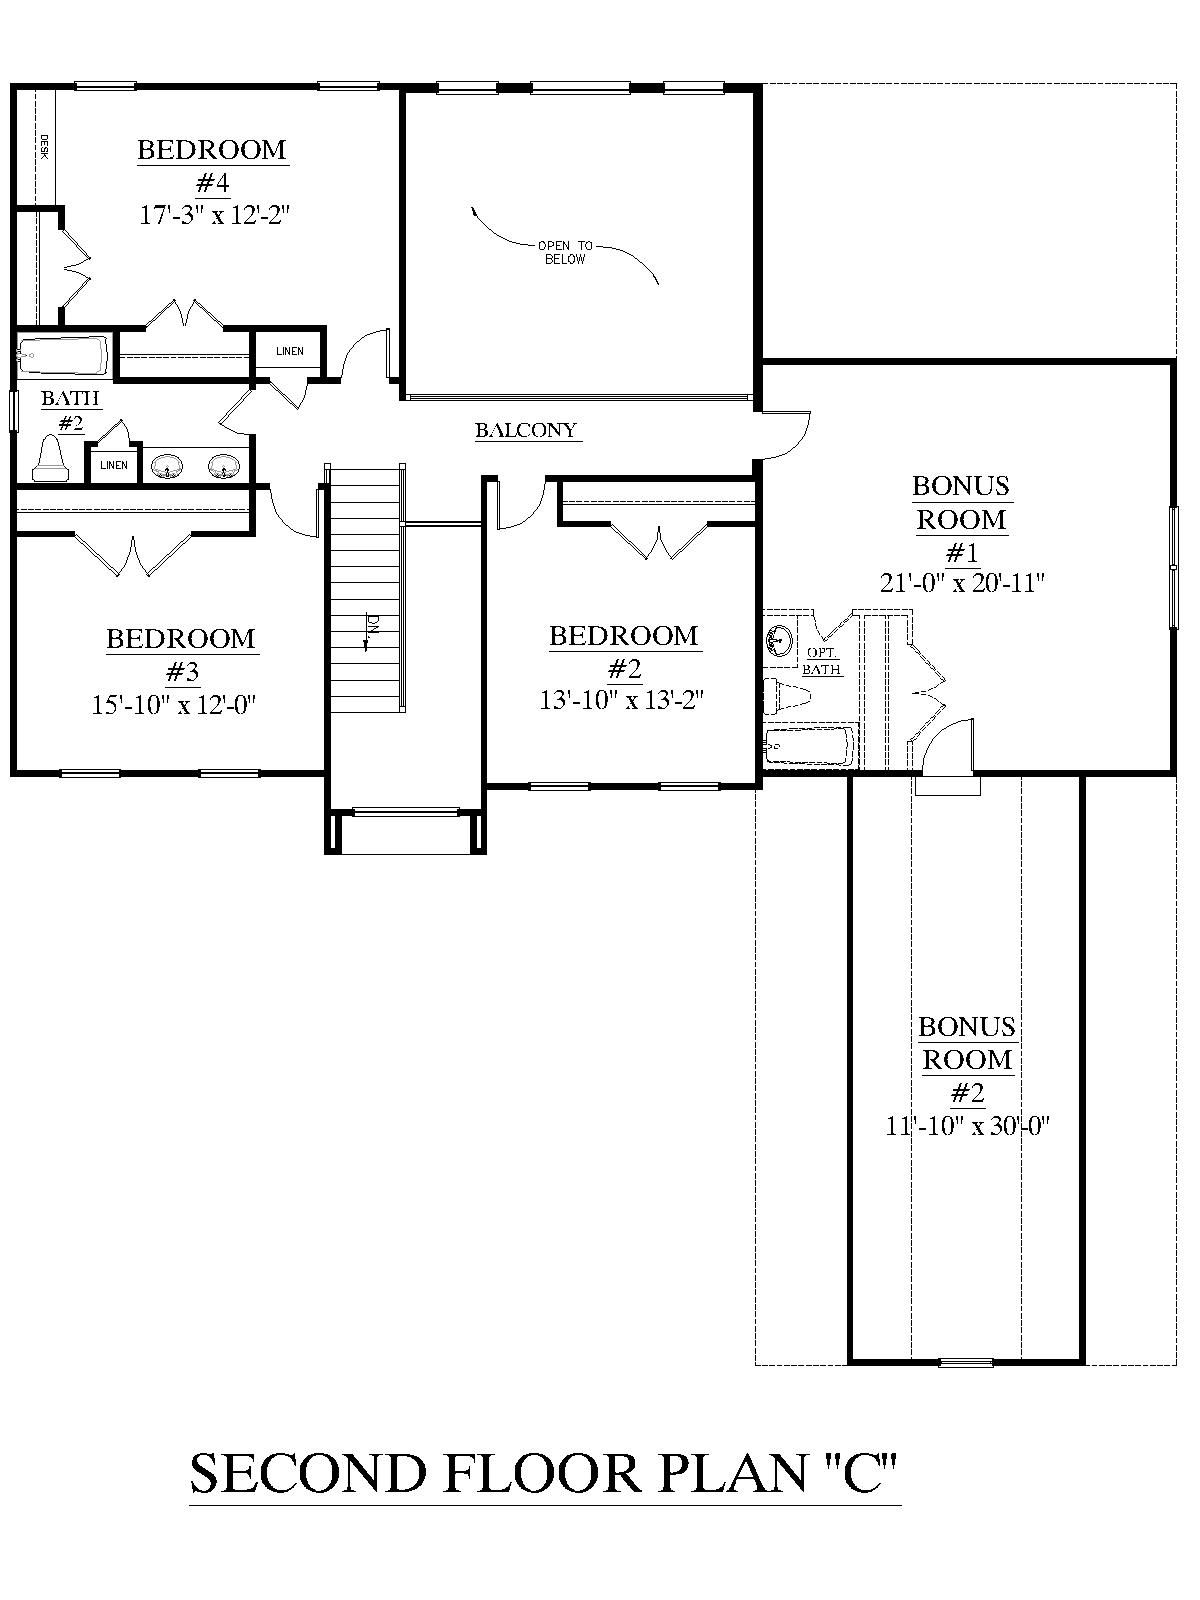 House plan 2995 c springdale c second floor plan for Upstairs plans